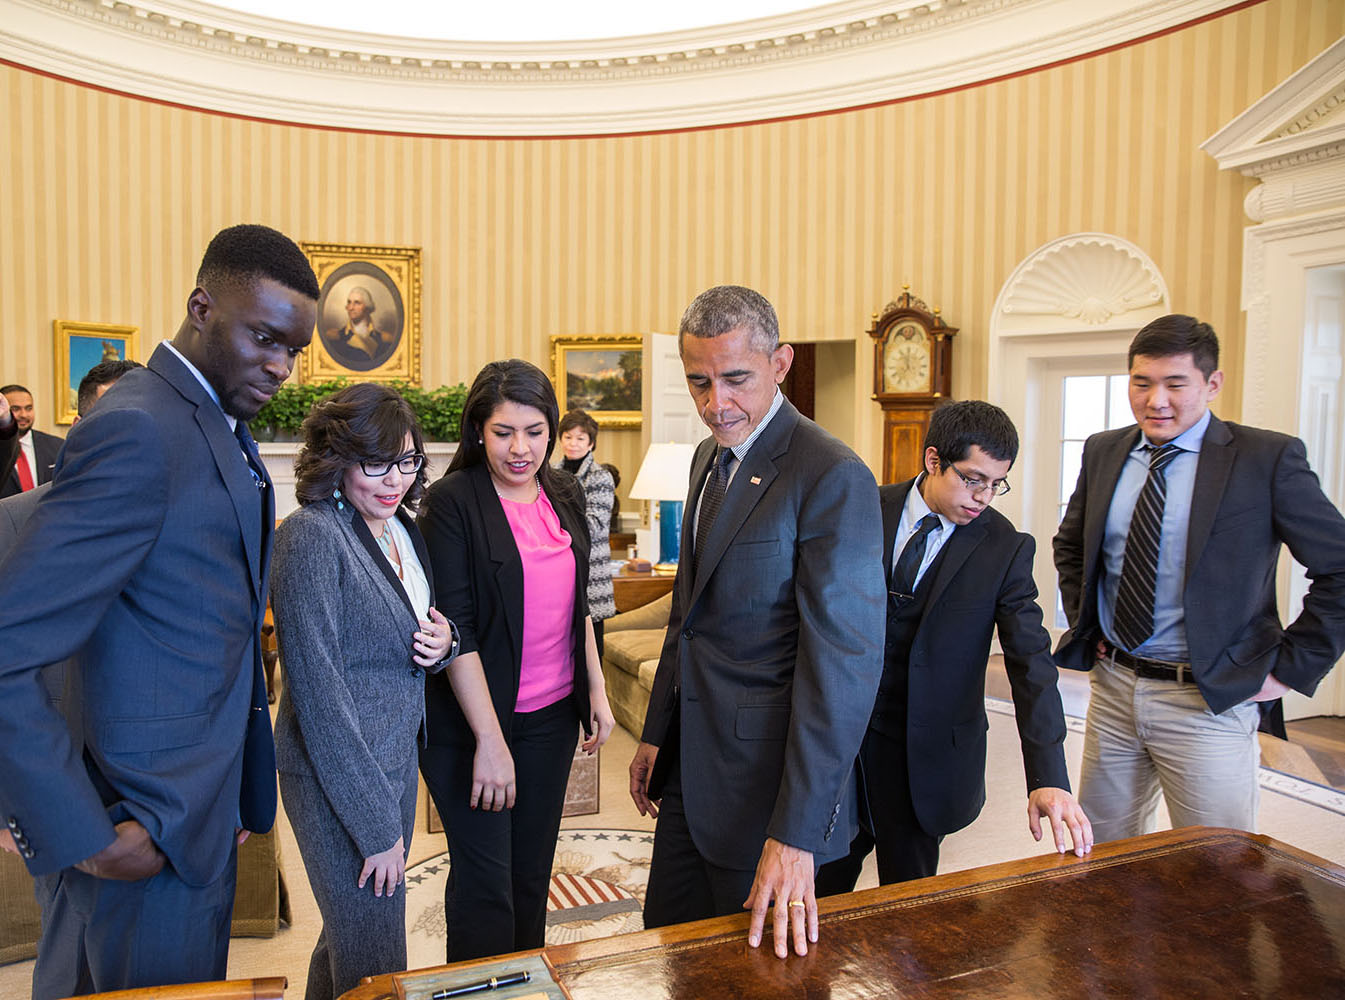 President Barack Obama shows the Resolute Desk in the Oval Office to a group of DREAMers, Feb. 4, 2015. (Official White House Photo by Pete Souza)